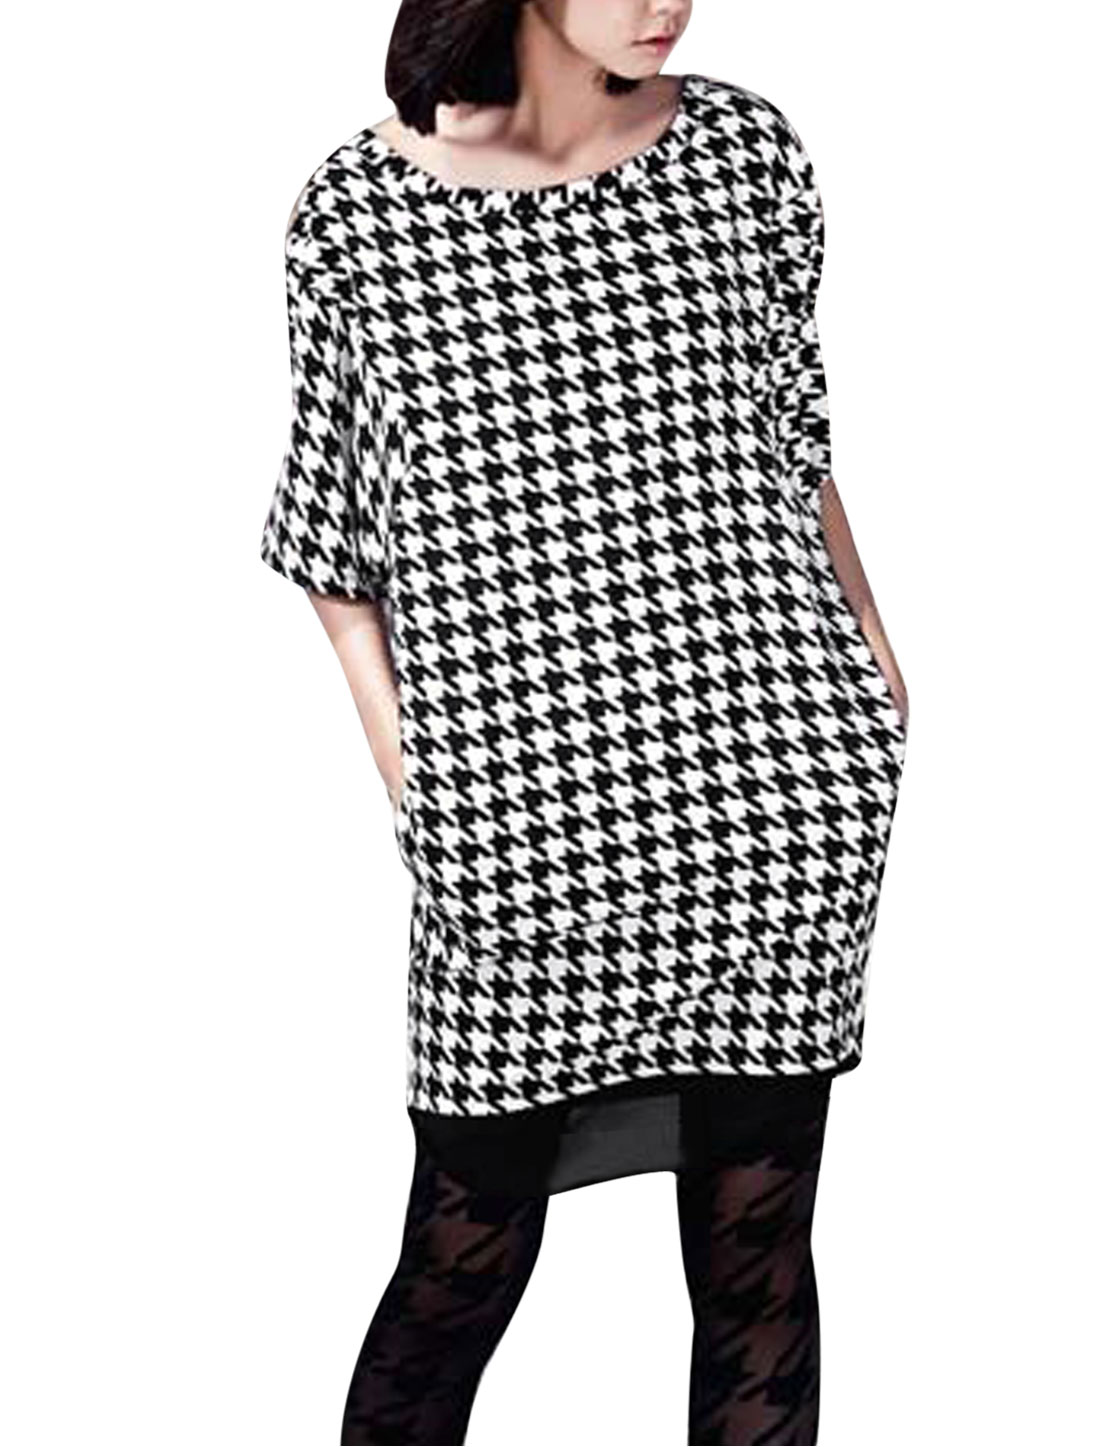 Lady 1/2 Batwing Sleeve Houndstooth Pattern Zipper Decor Dress Black White S